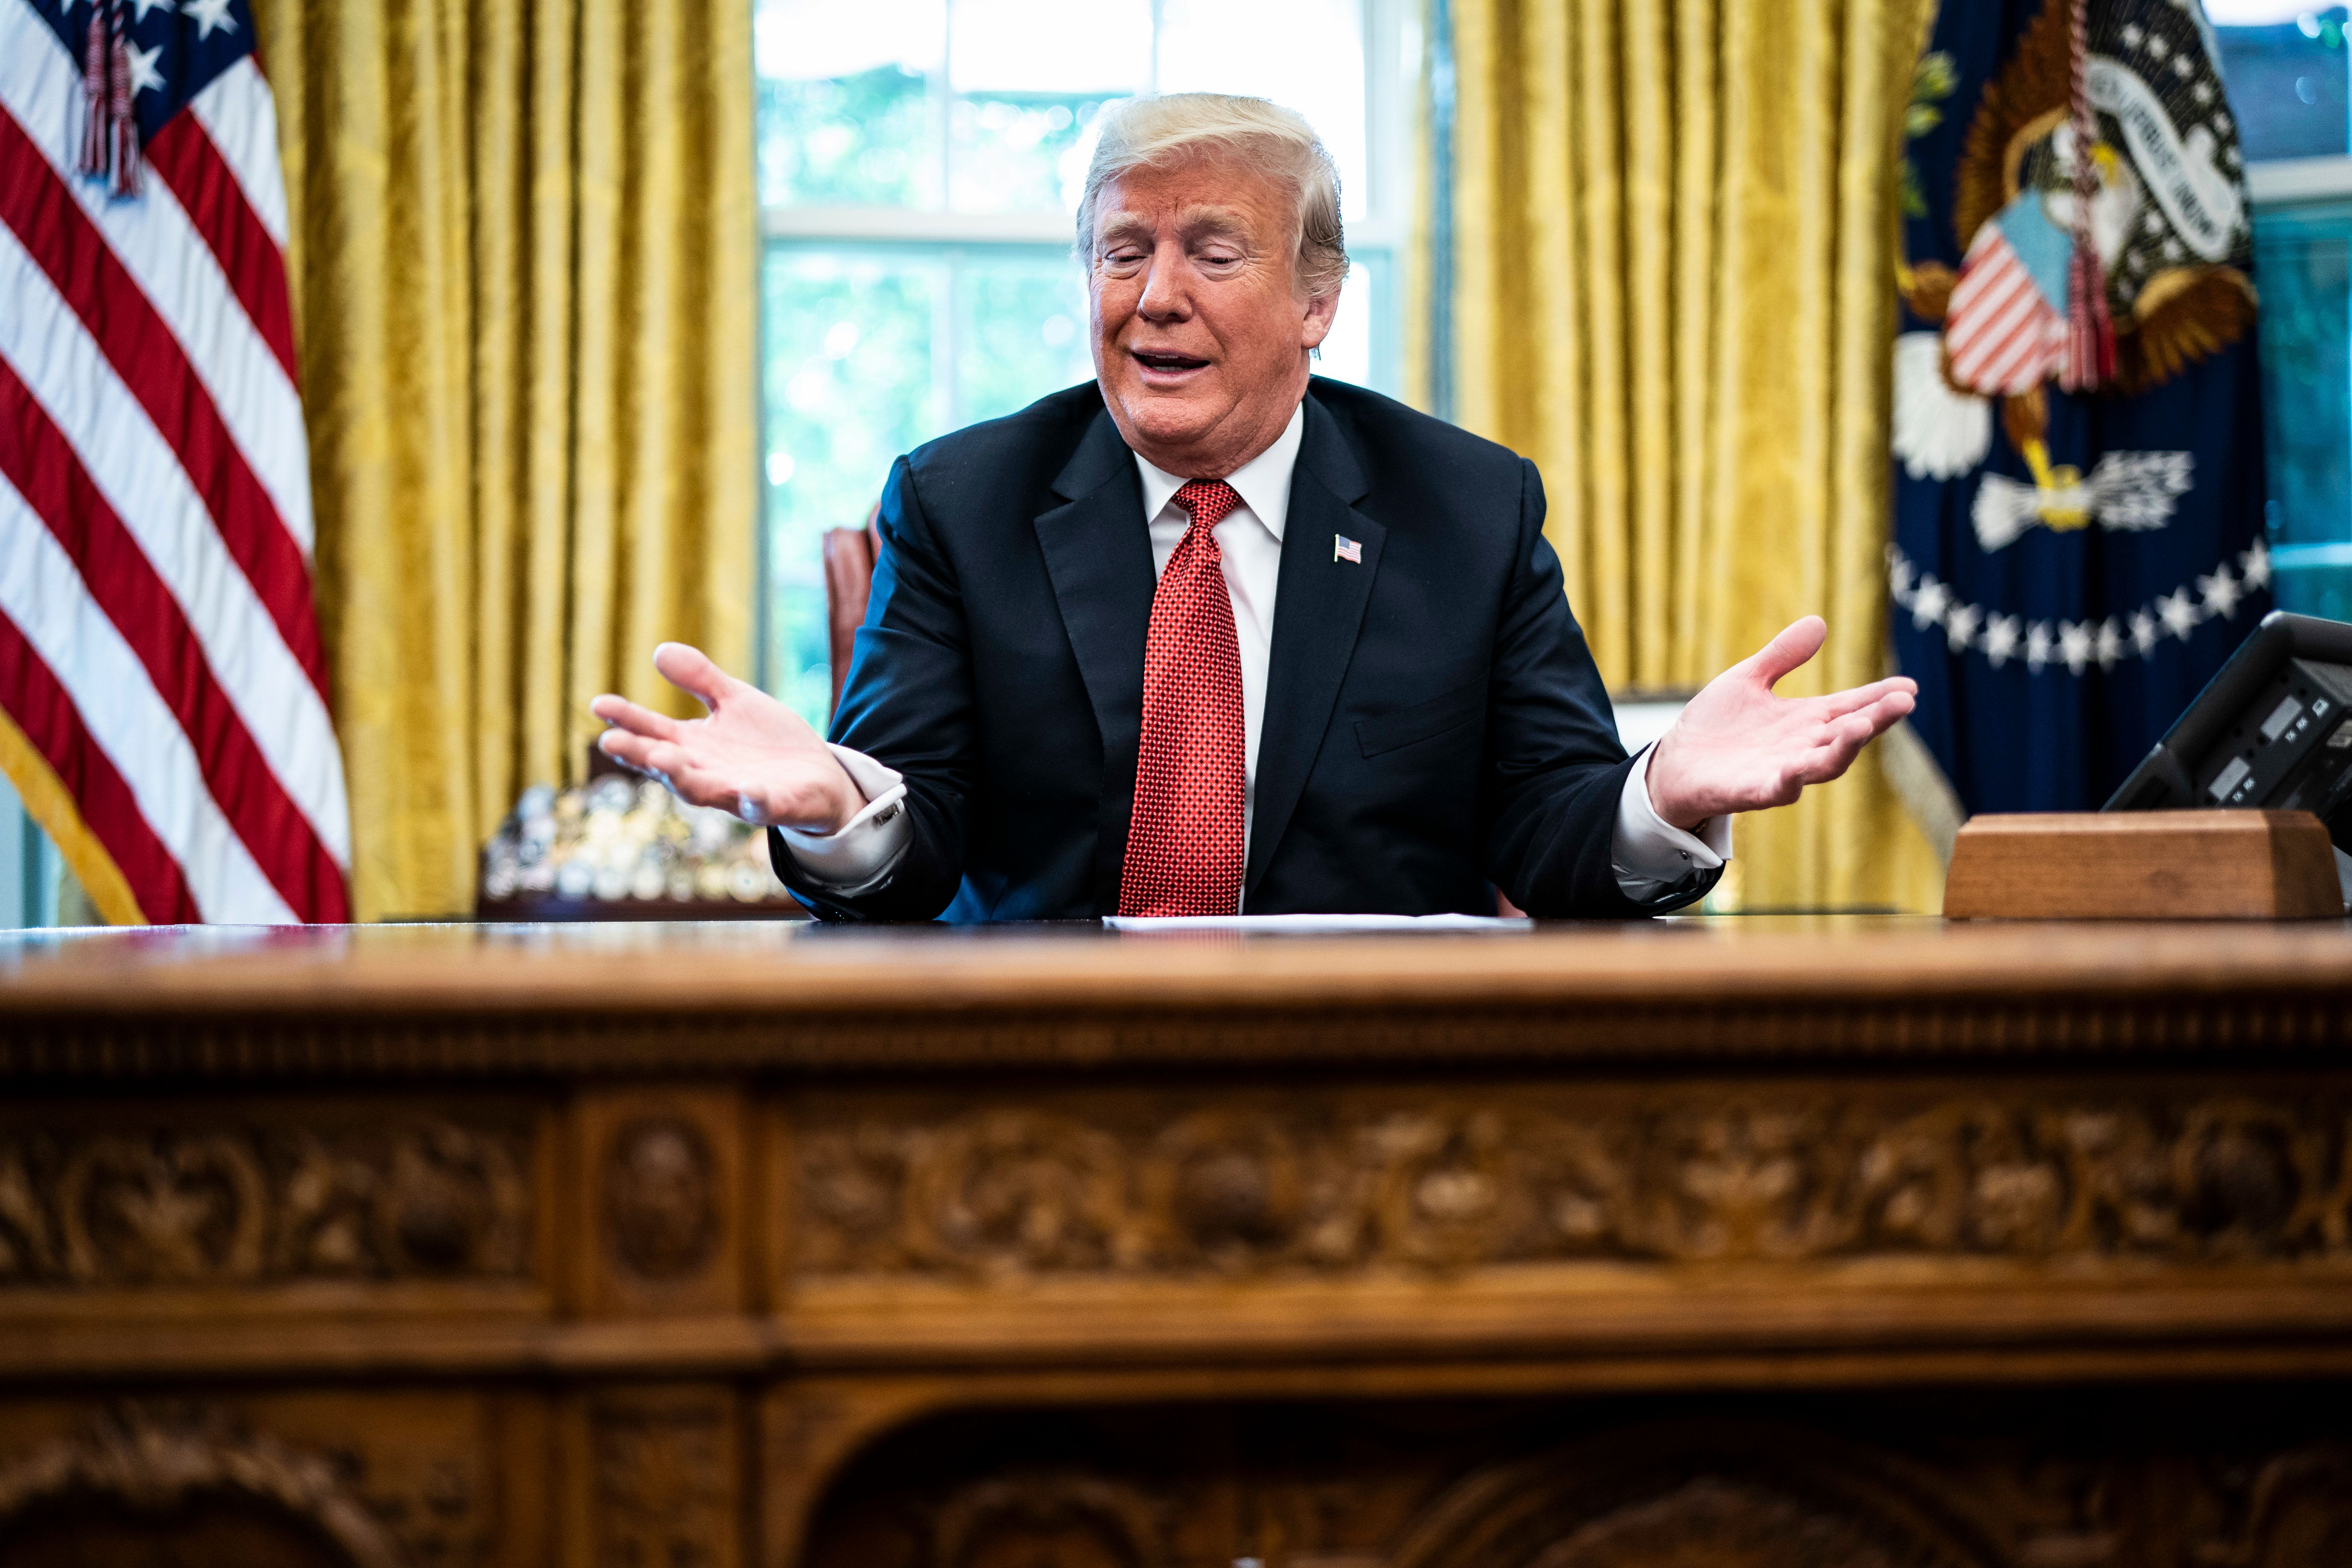 WASHINGTON, DC - OCTOBER 17 : President Donald J. Trump speaks during a meeting with workers titled Cutting the Red Tape, Unleashing Economic Freedom in the Oval Office of the White House on Wednesday, Oct. 17, 2018 in Washington, DC. (Photo by Jabin Botsford/The Washington Post via Getty Images)